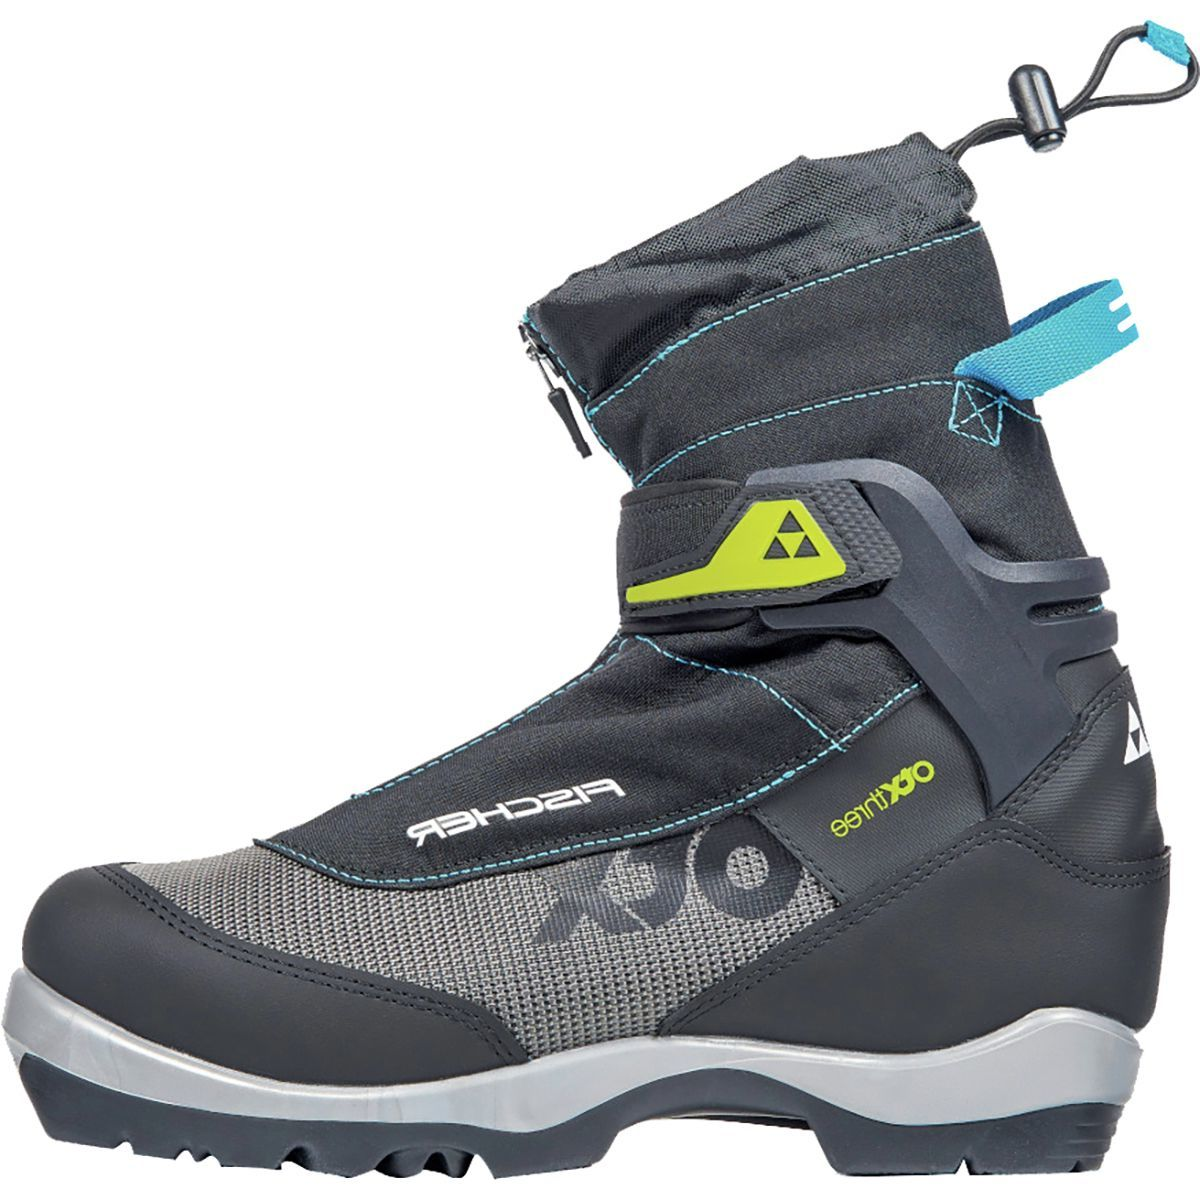 Fischer Offtrack 3 Backcountry My Style Boot - Women's